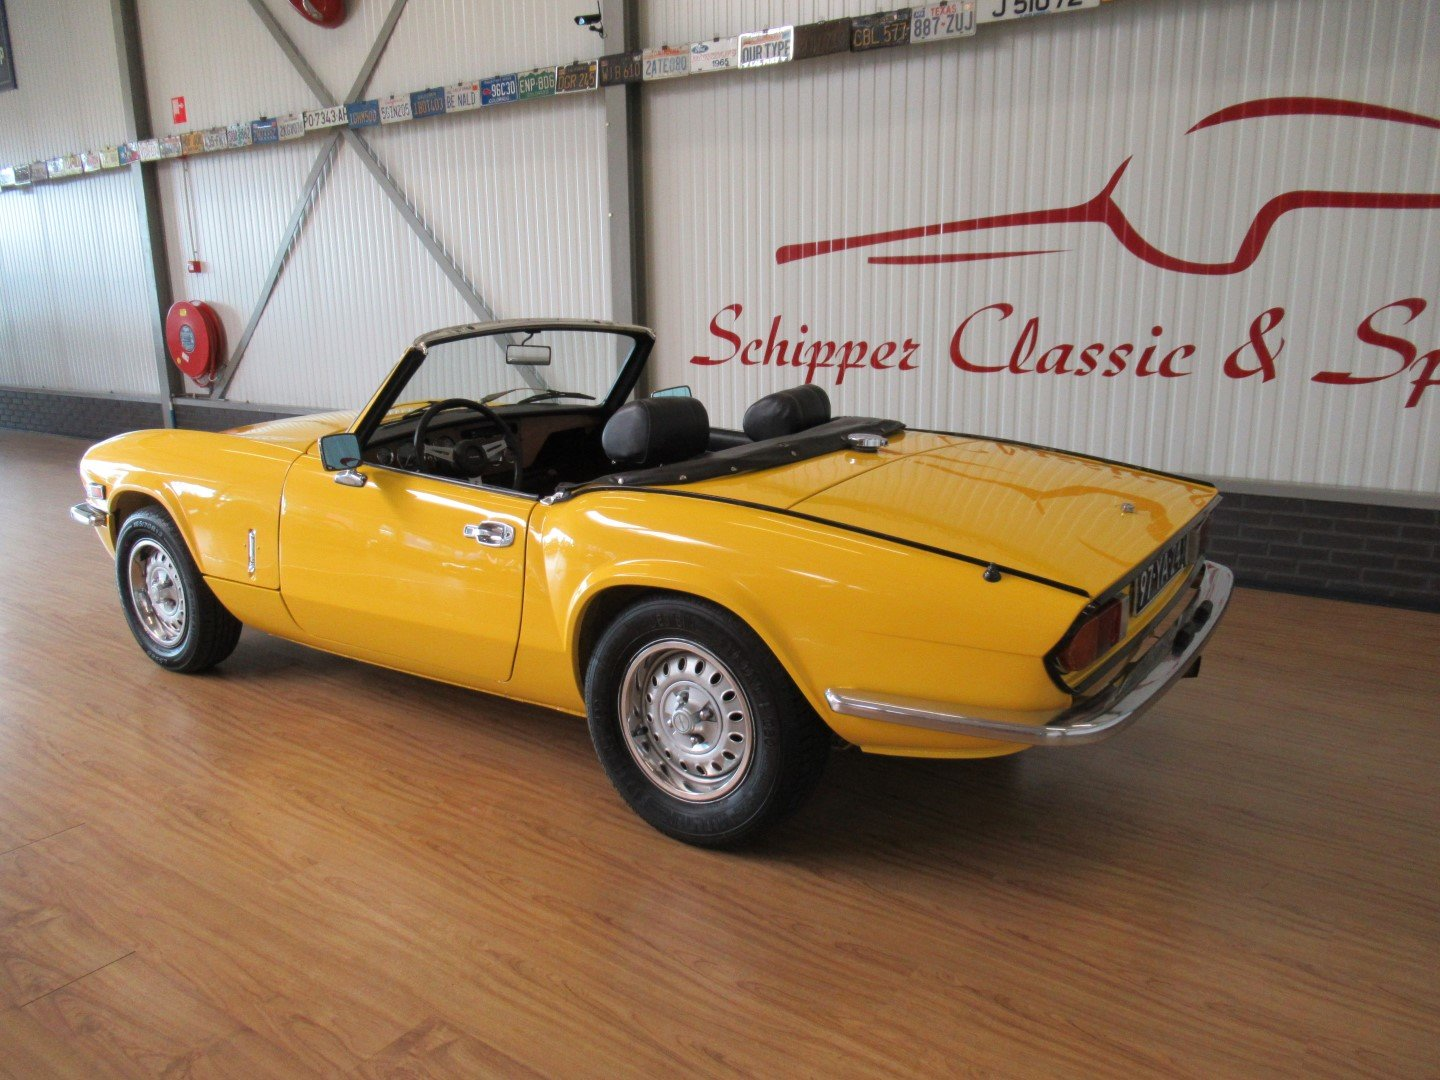 1973 Triumph Spitfire MK IV Roadster For Sale (picture 3 of 6)